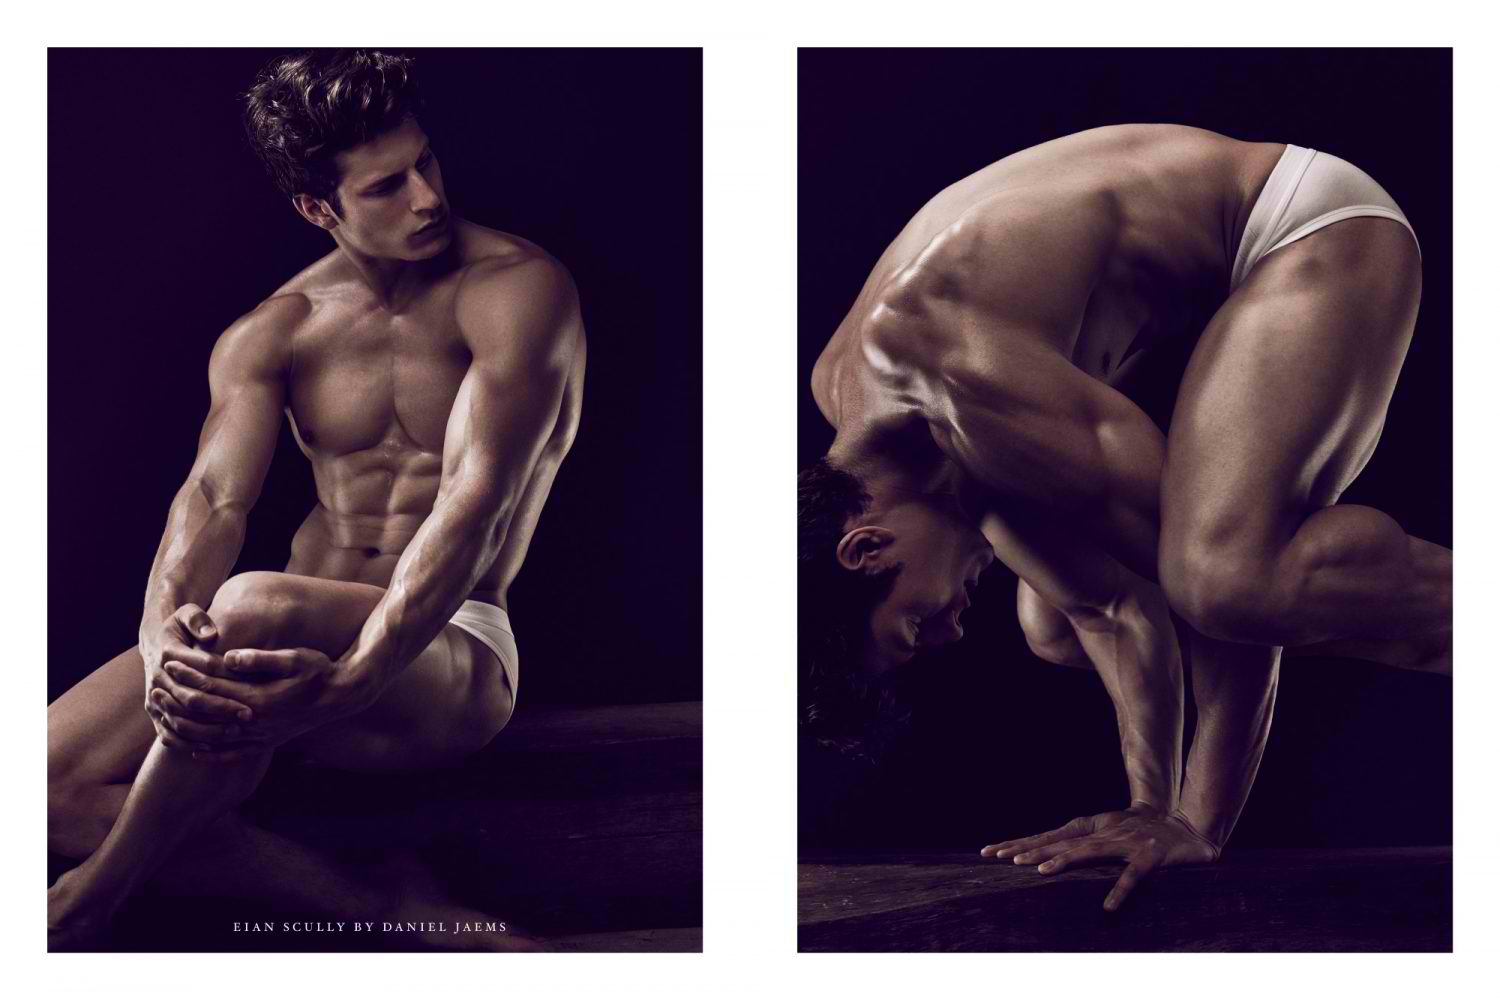 Eian-Scully-by-Daniel-Jaems-Obsession-No17-008-1500x1000 (1)